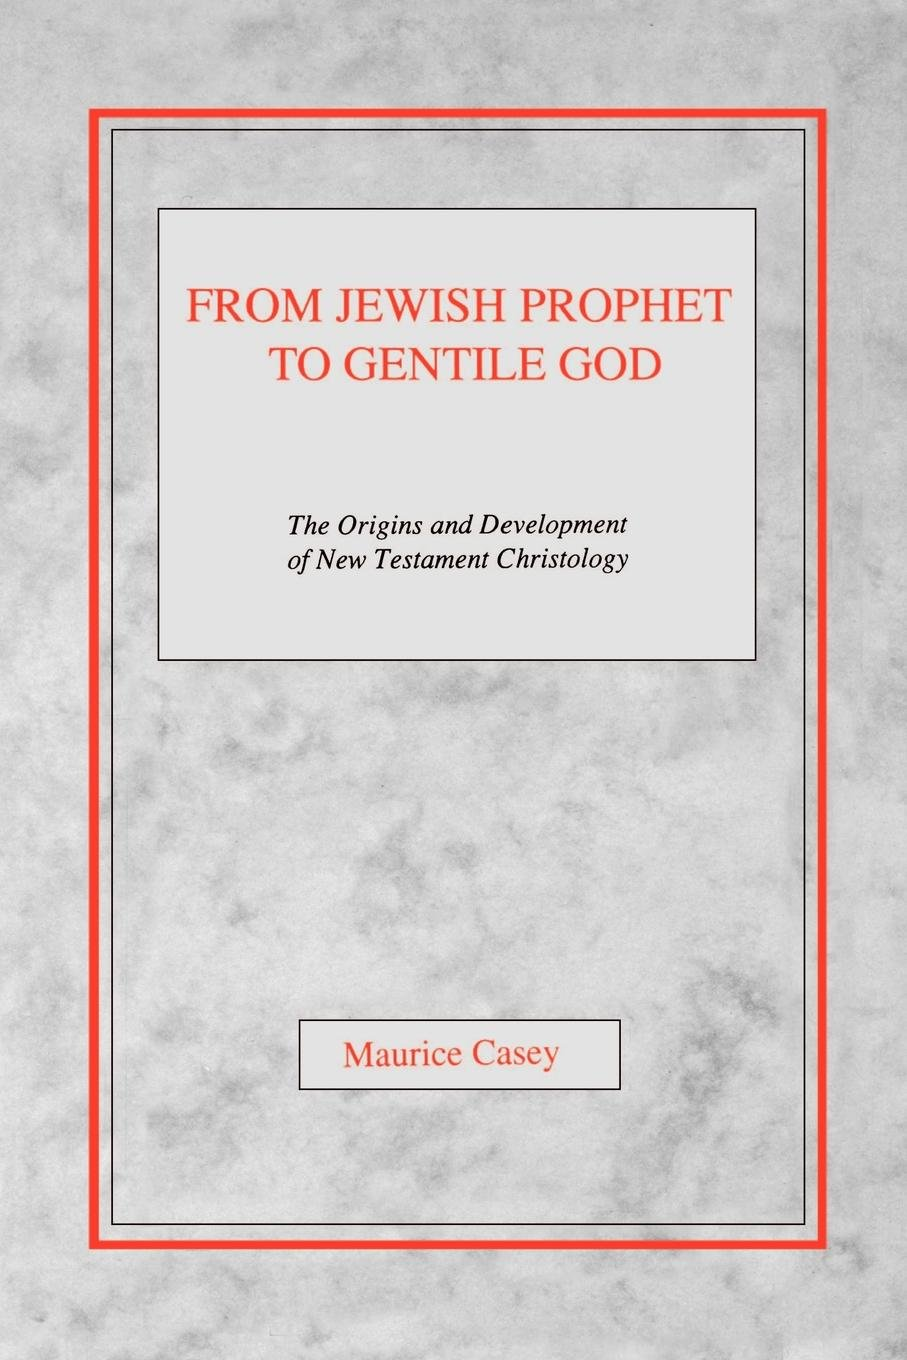 From Jewish Prophet to Gentile God: The Origins and Development of New Testament Christology